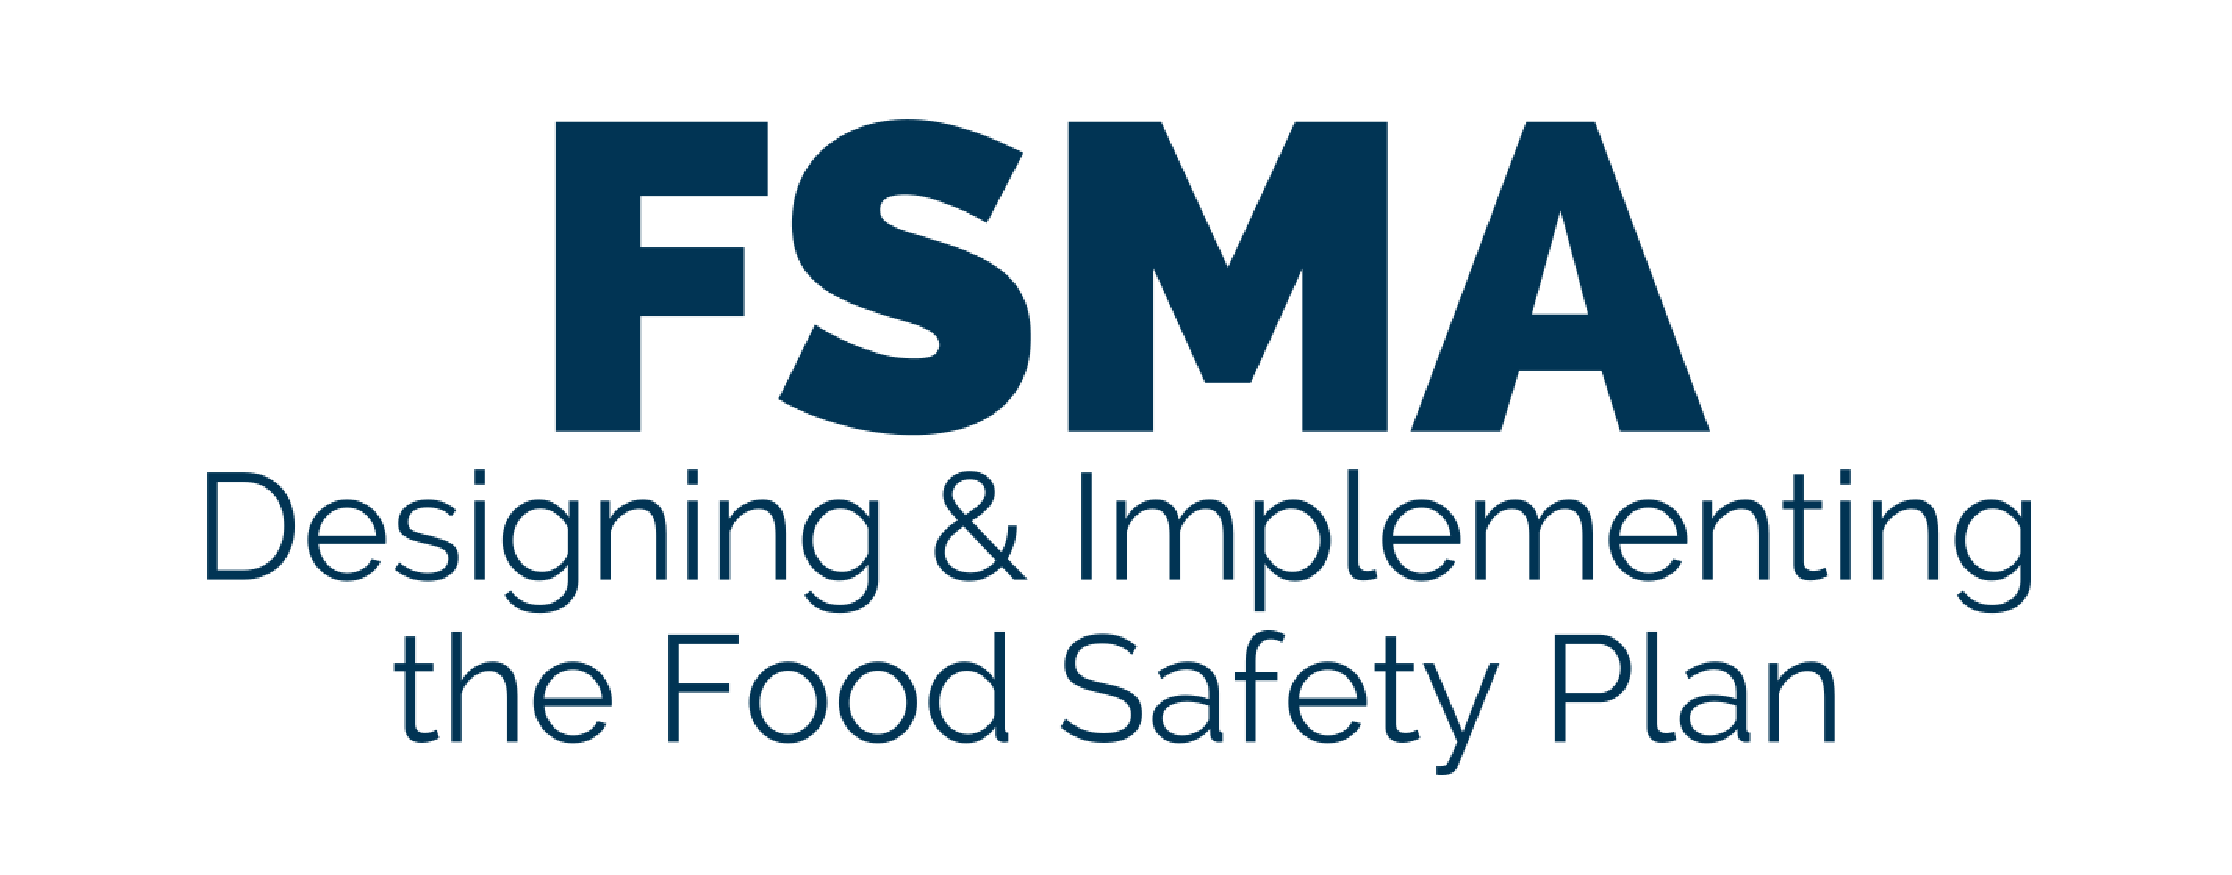 Designing & Implementing  the Food Safety Plan